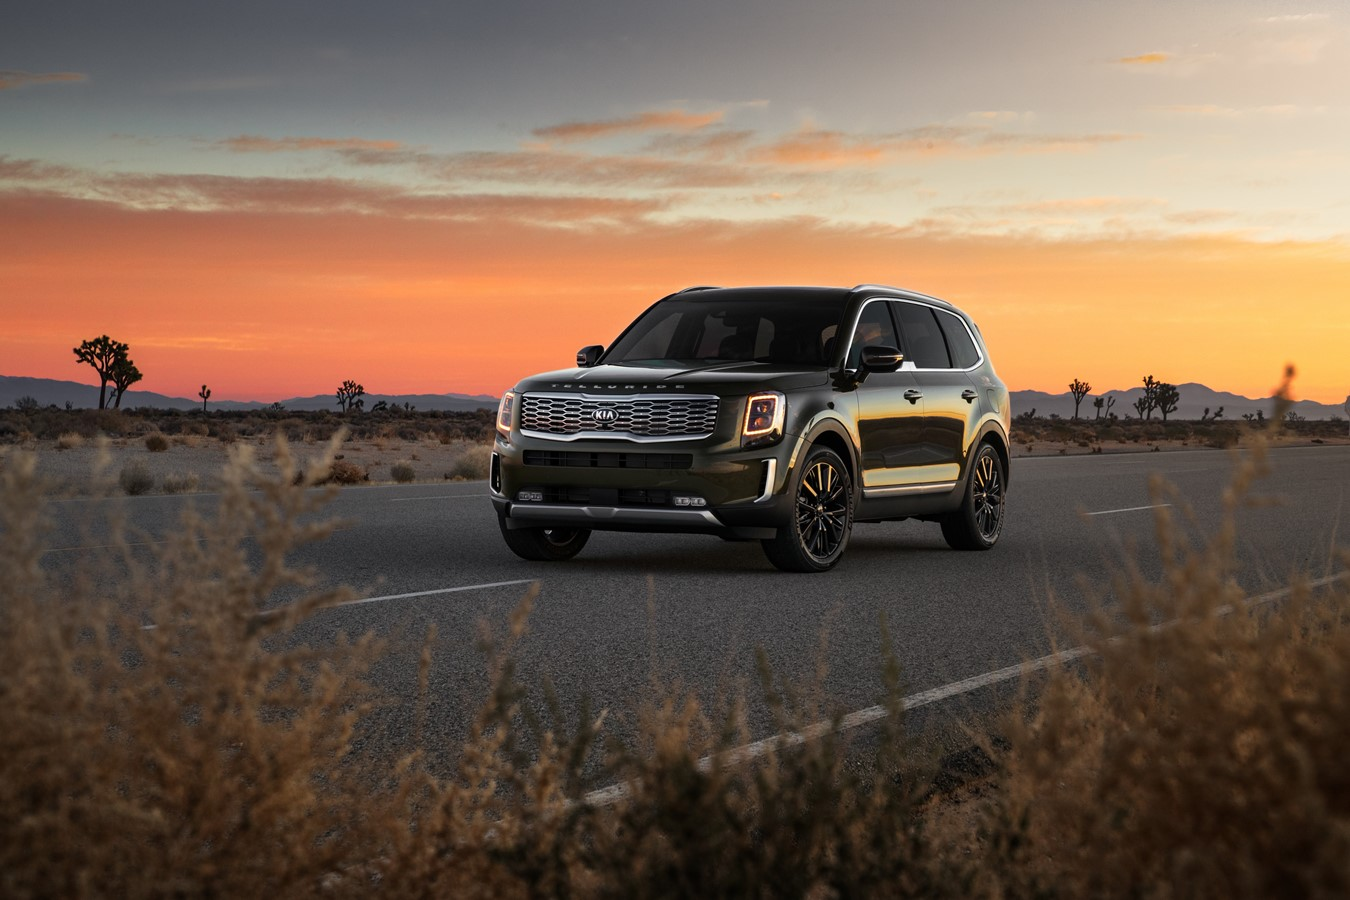 2020 Kia Telluride Buyer's Guide